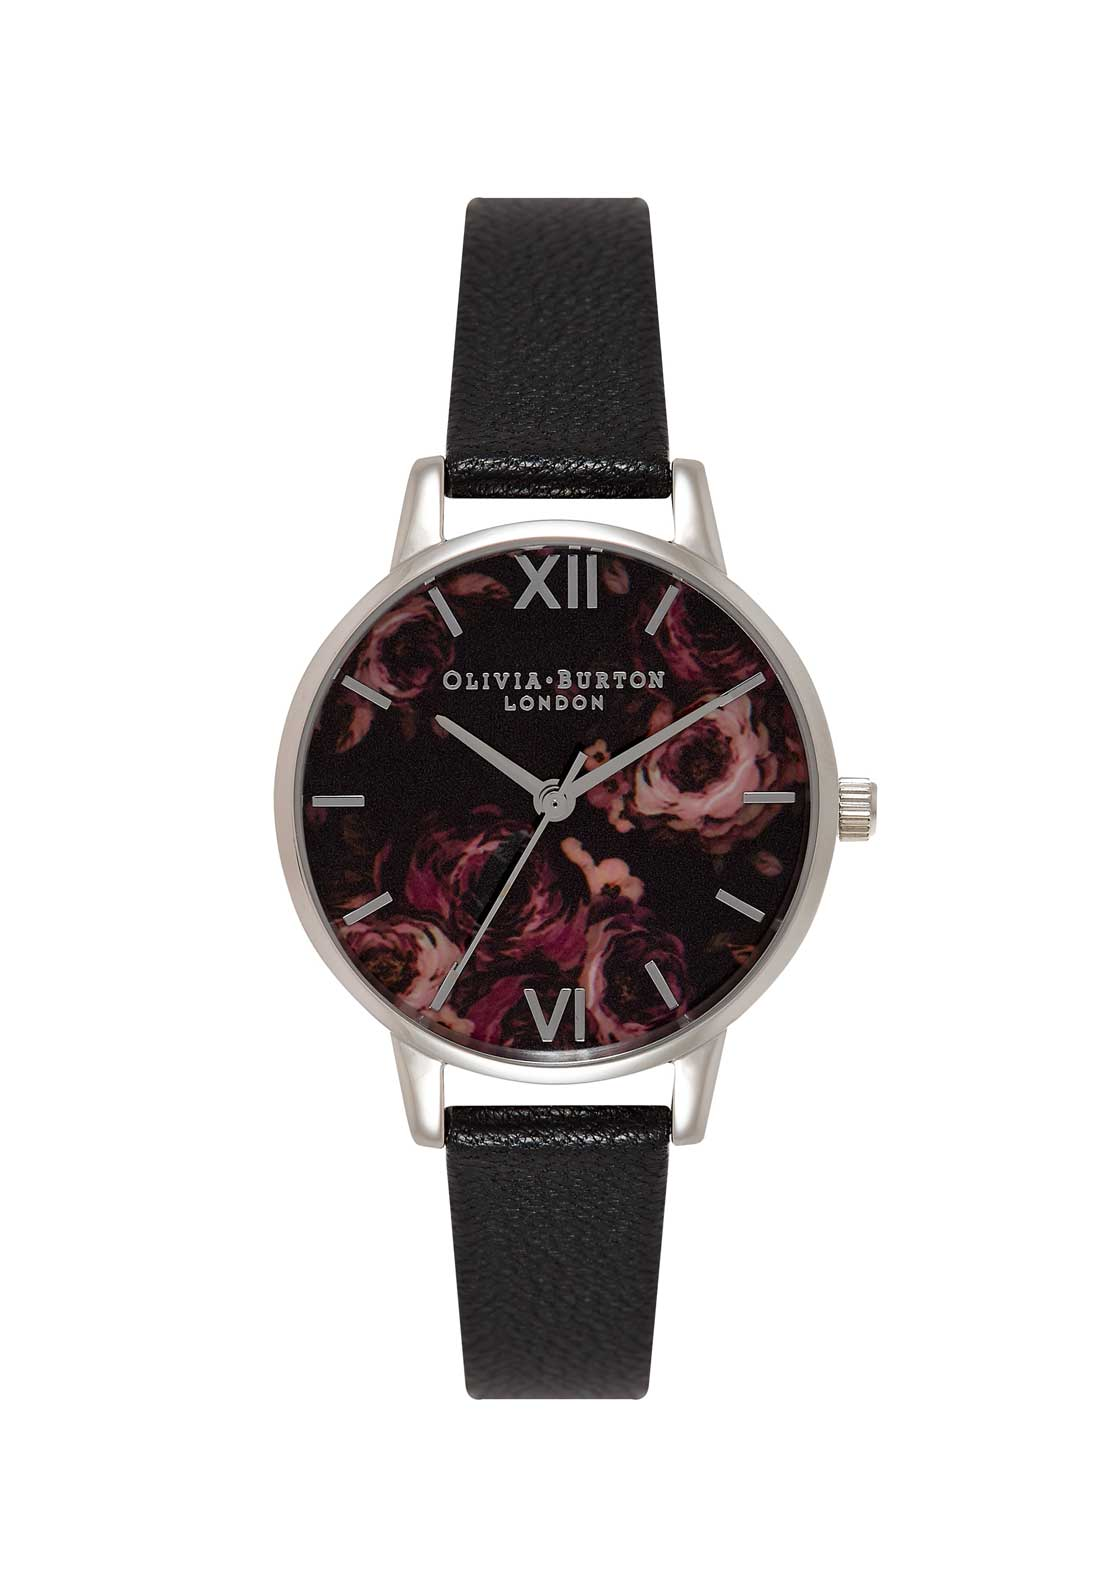 Olivia Burton Painterly Prints Midi Watch in Black, Silver